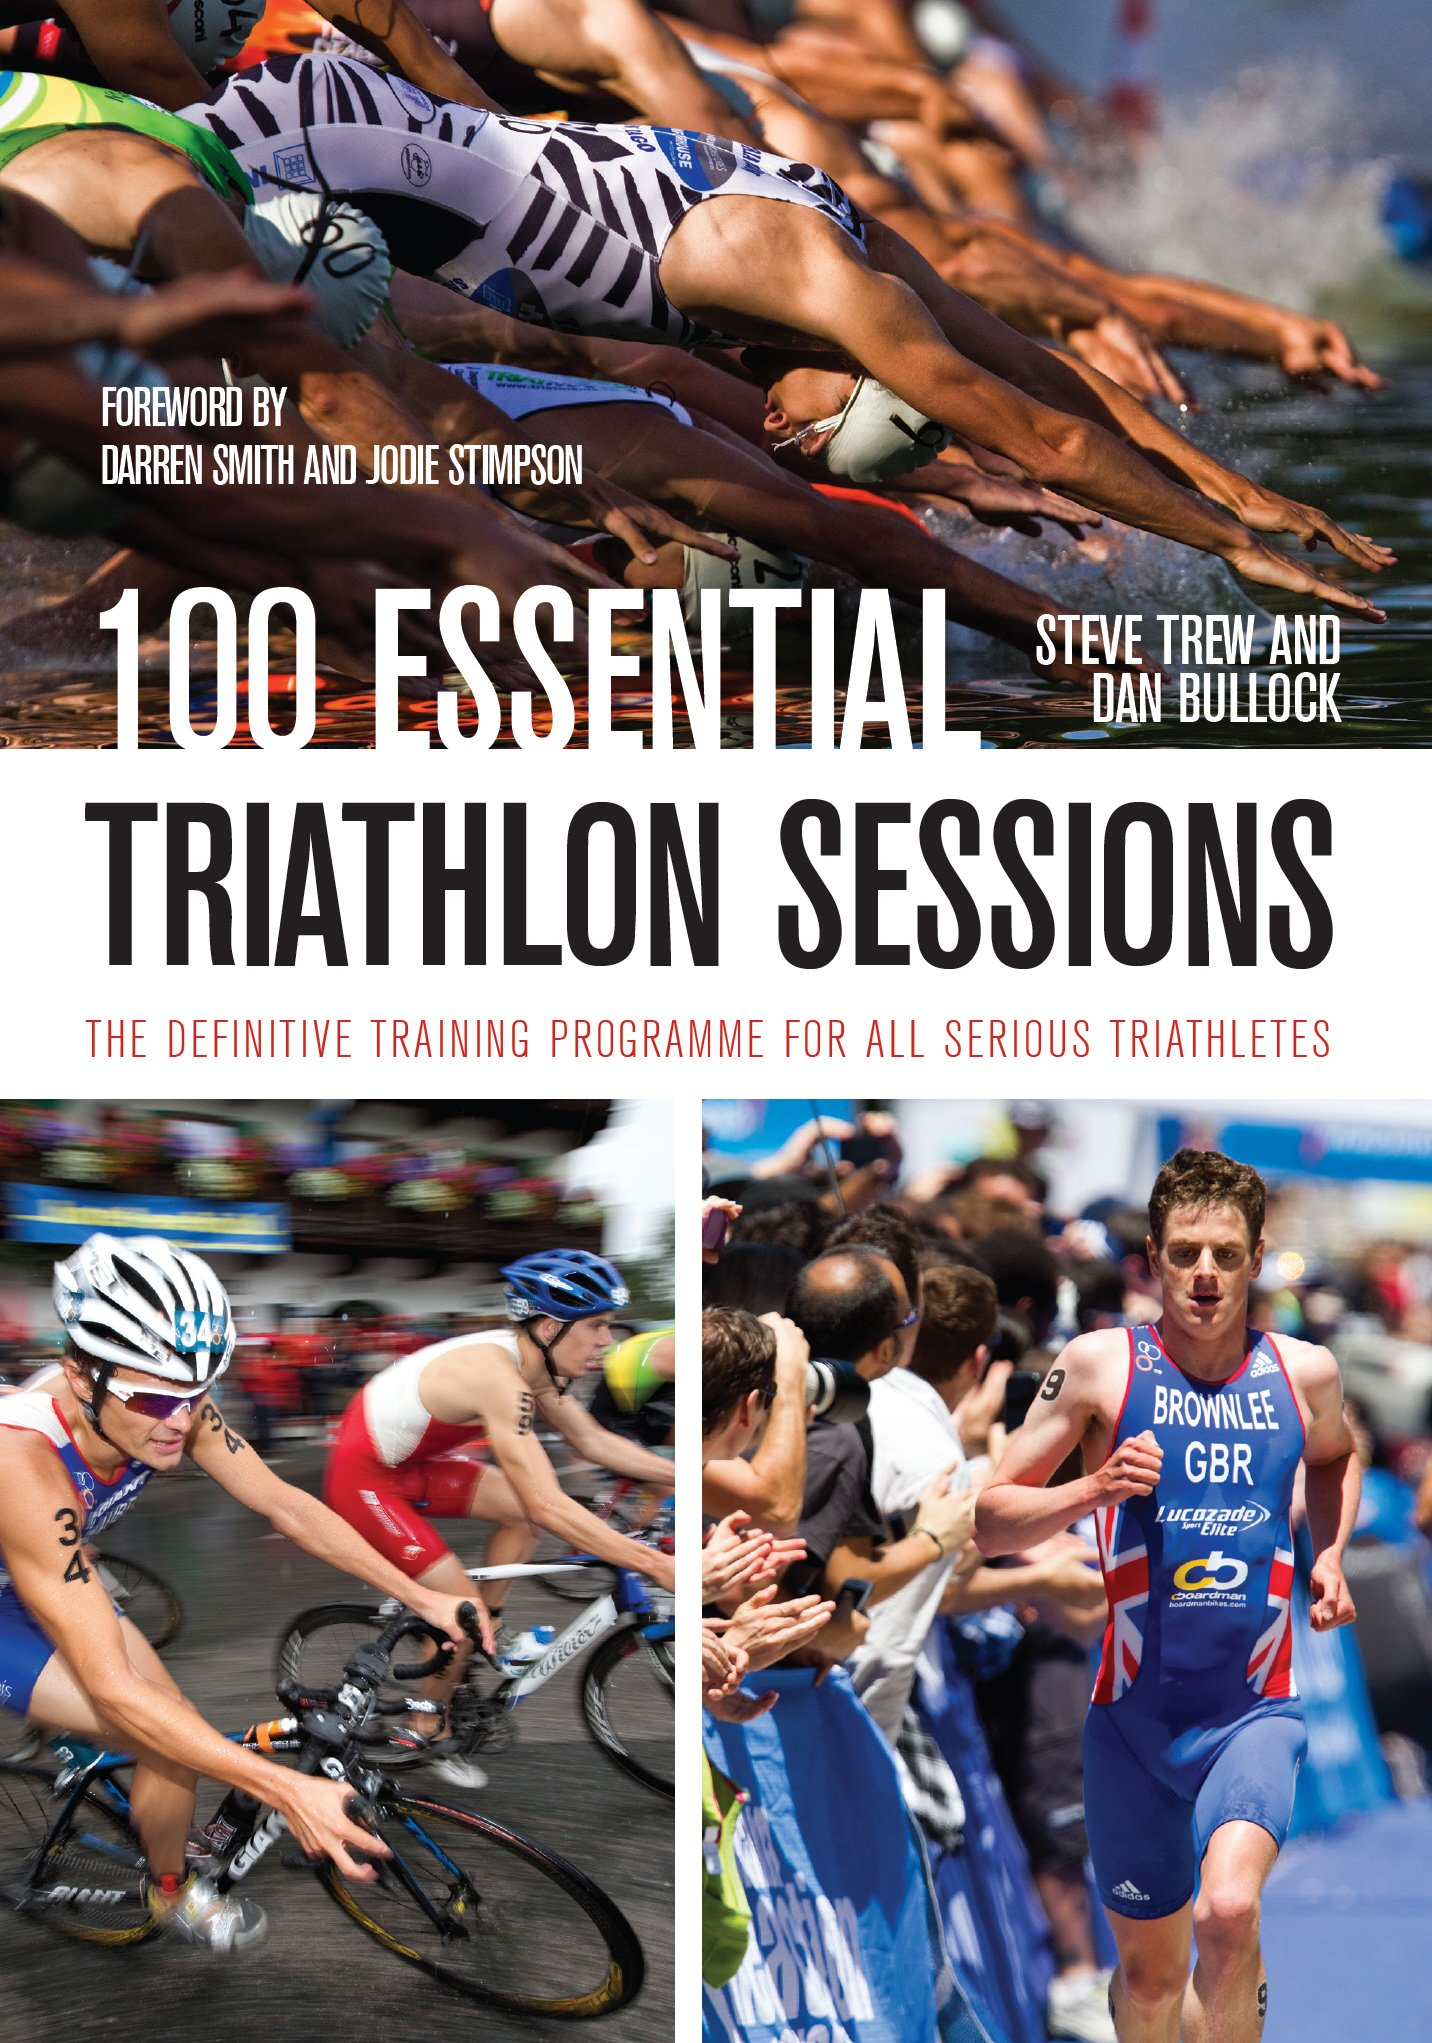 100 Essential Triathlon Sessions: The Definitive Training Programme for all Serious Triathletes (English Edition)